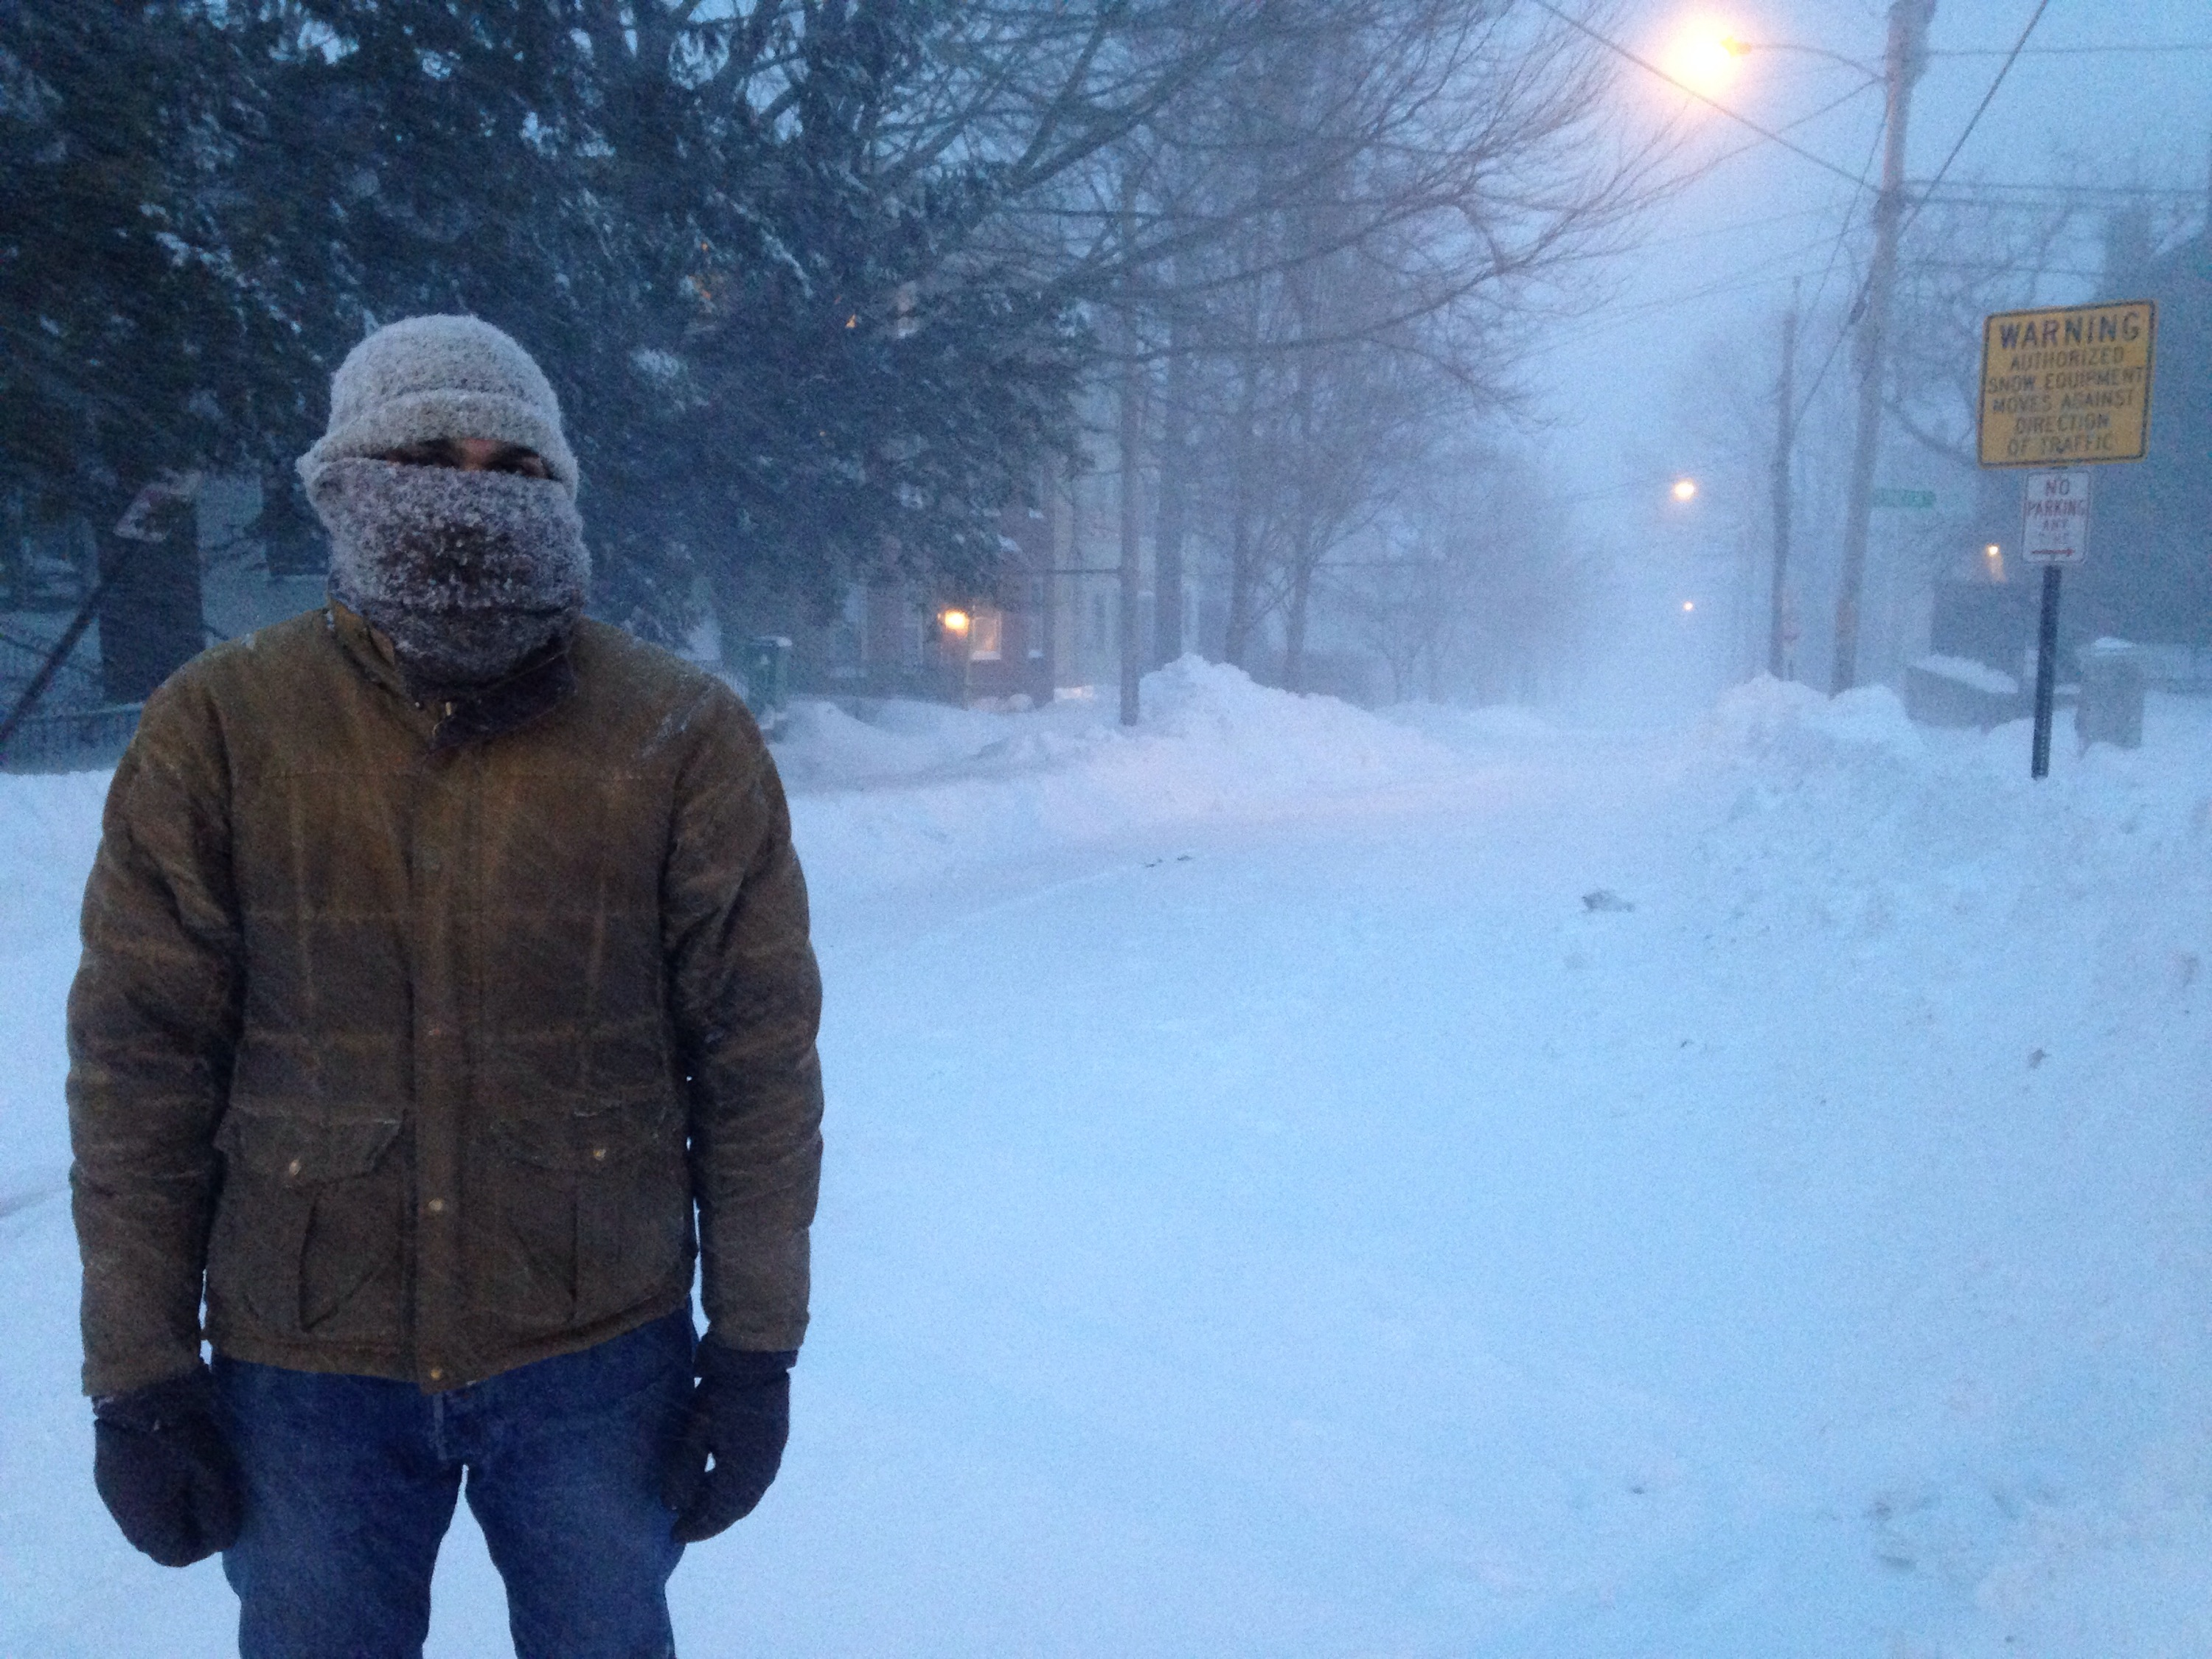 Blizzard Juno hits Portland Maine, and the bearded fellow is ready with warm woolen knits.